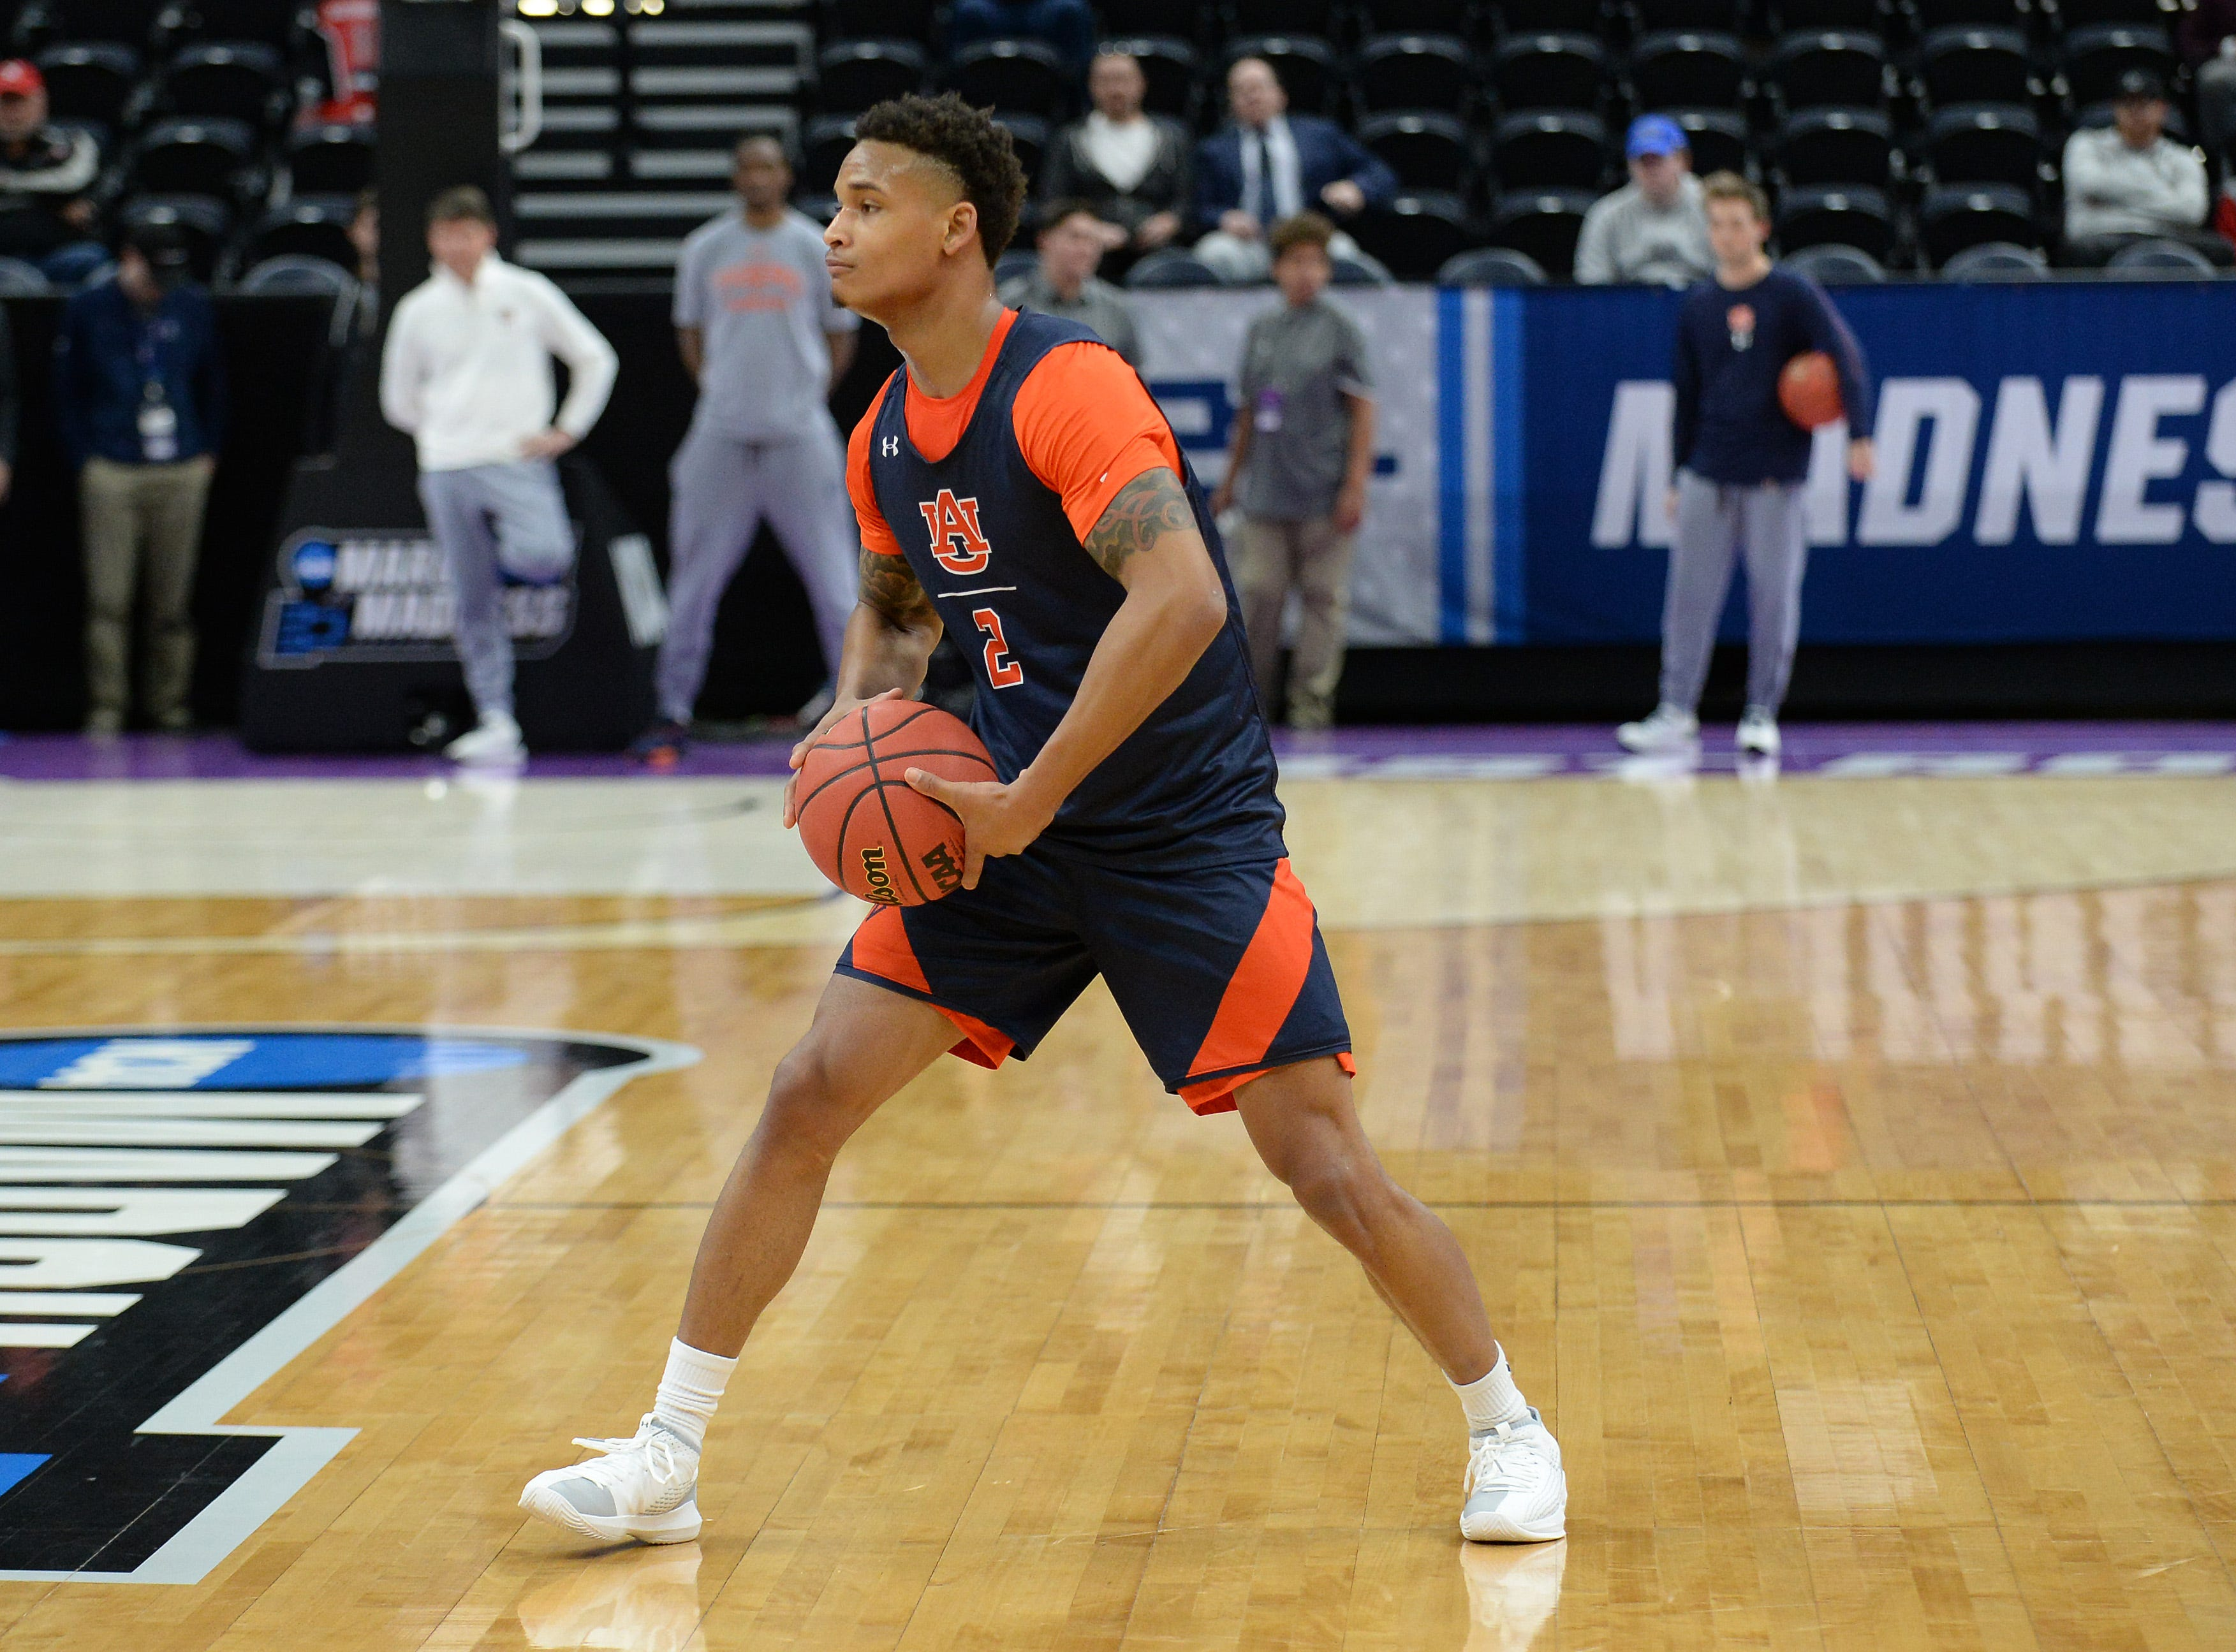 Auburn guard Bryce Brown (2) during practice before the first round of the 2019 NCAA Tournament at Vivint Smart Home Aren on March 20, 2019, in Salt Lake City.